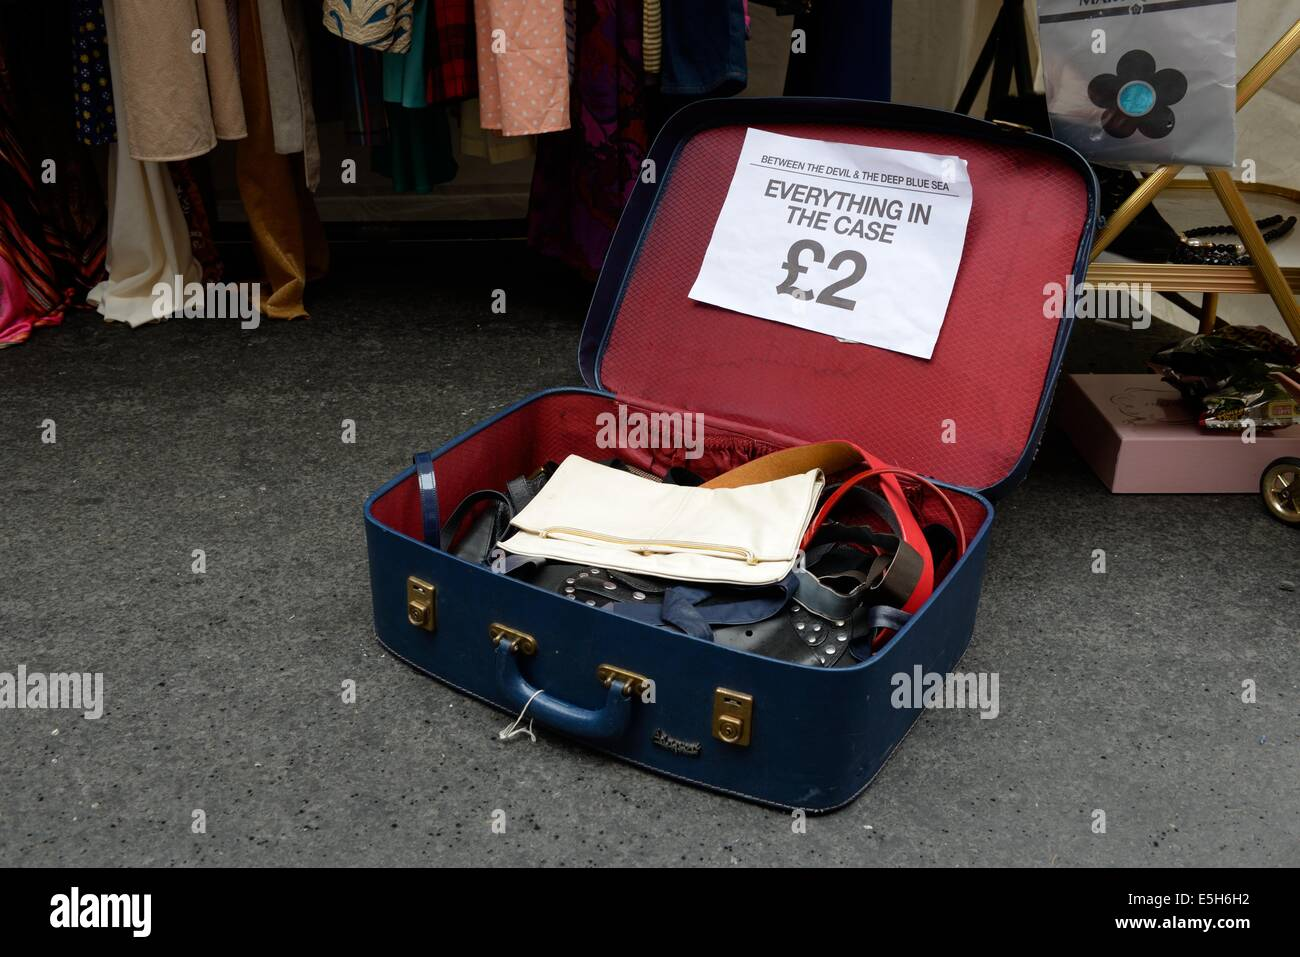 A secondhand suitcase containing items priced at £2 open on the ground at an outdoor market stall in Glasgow, - Stock Image